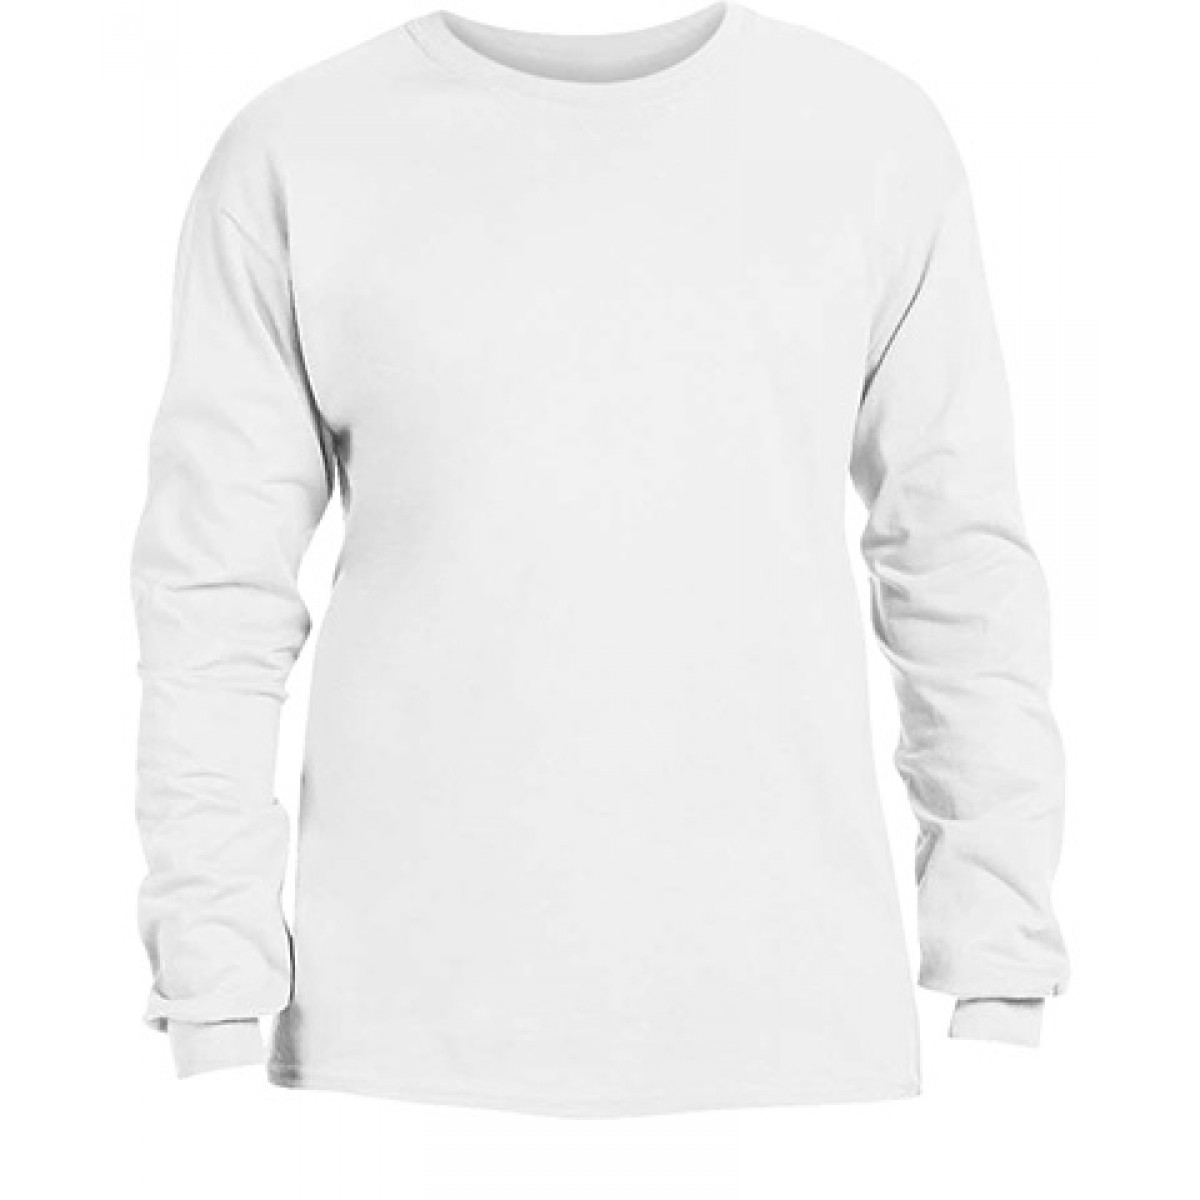 Adidas Long Sleeve T-shirt With Adidas logo